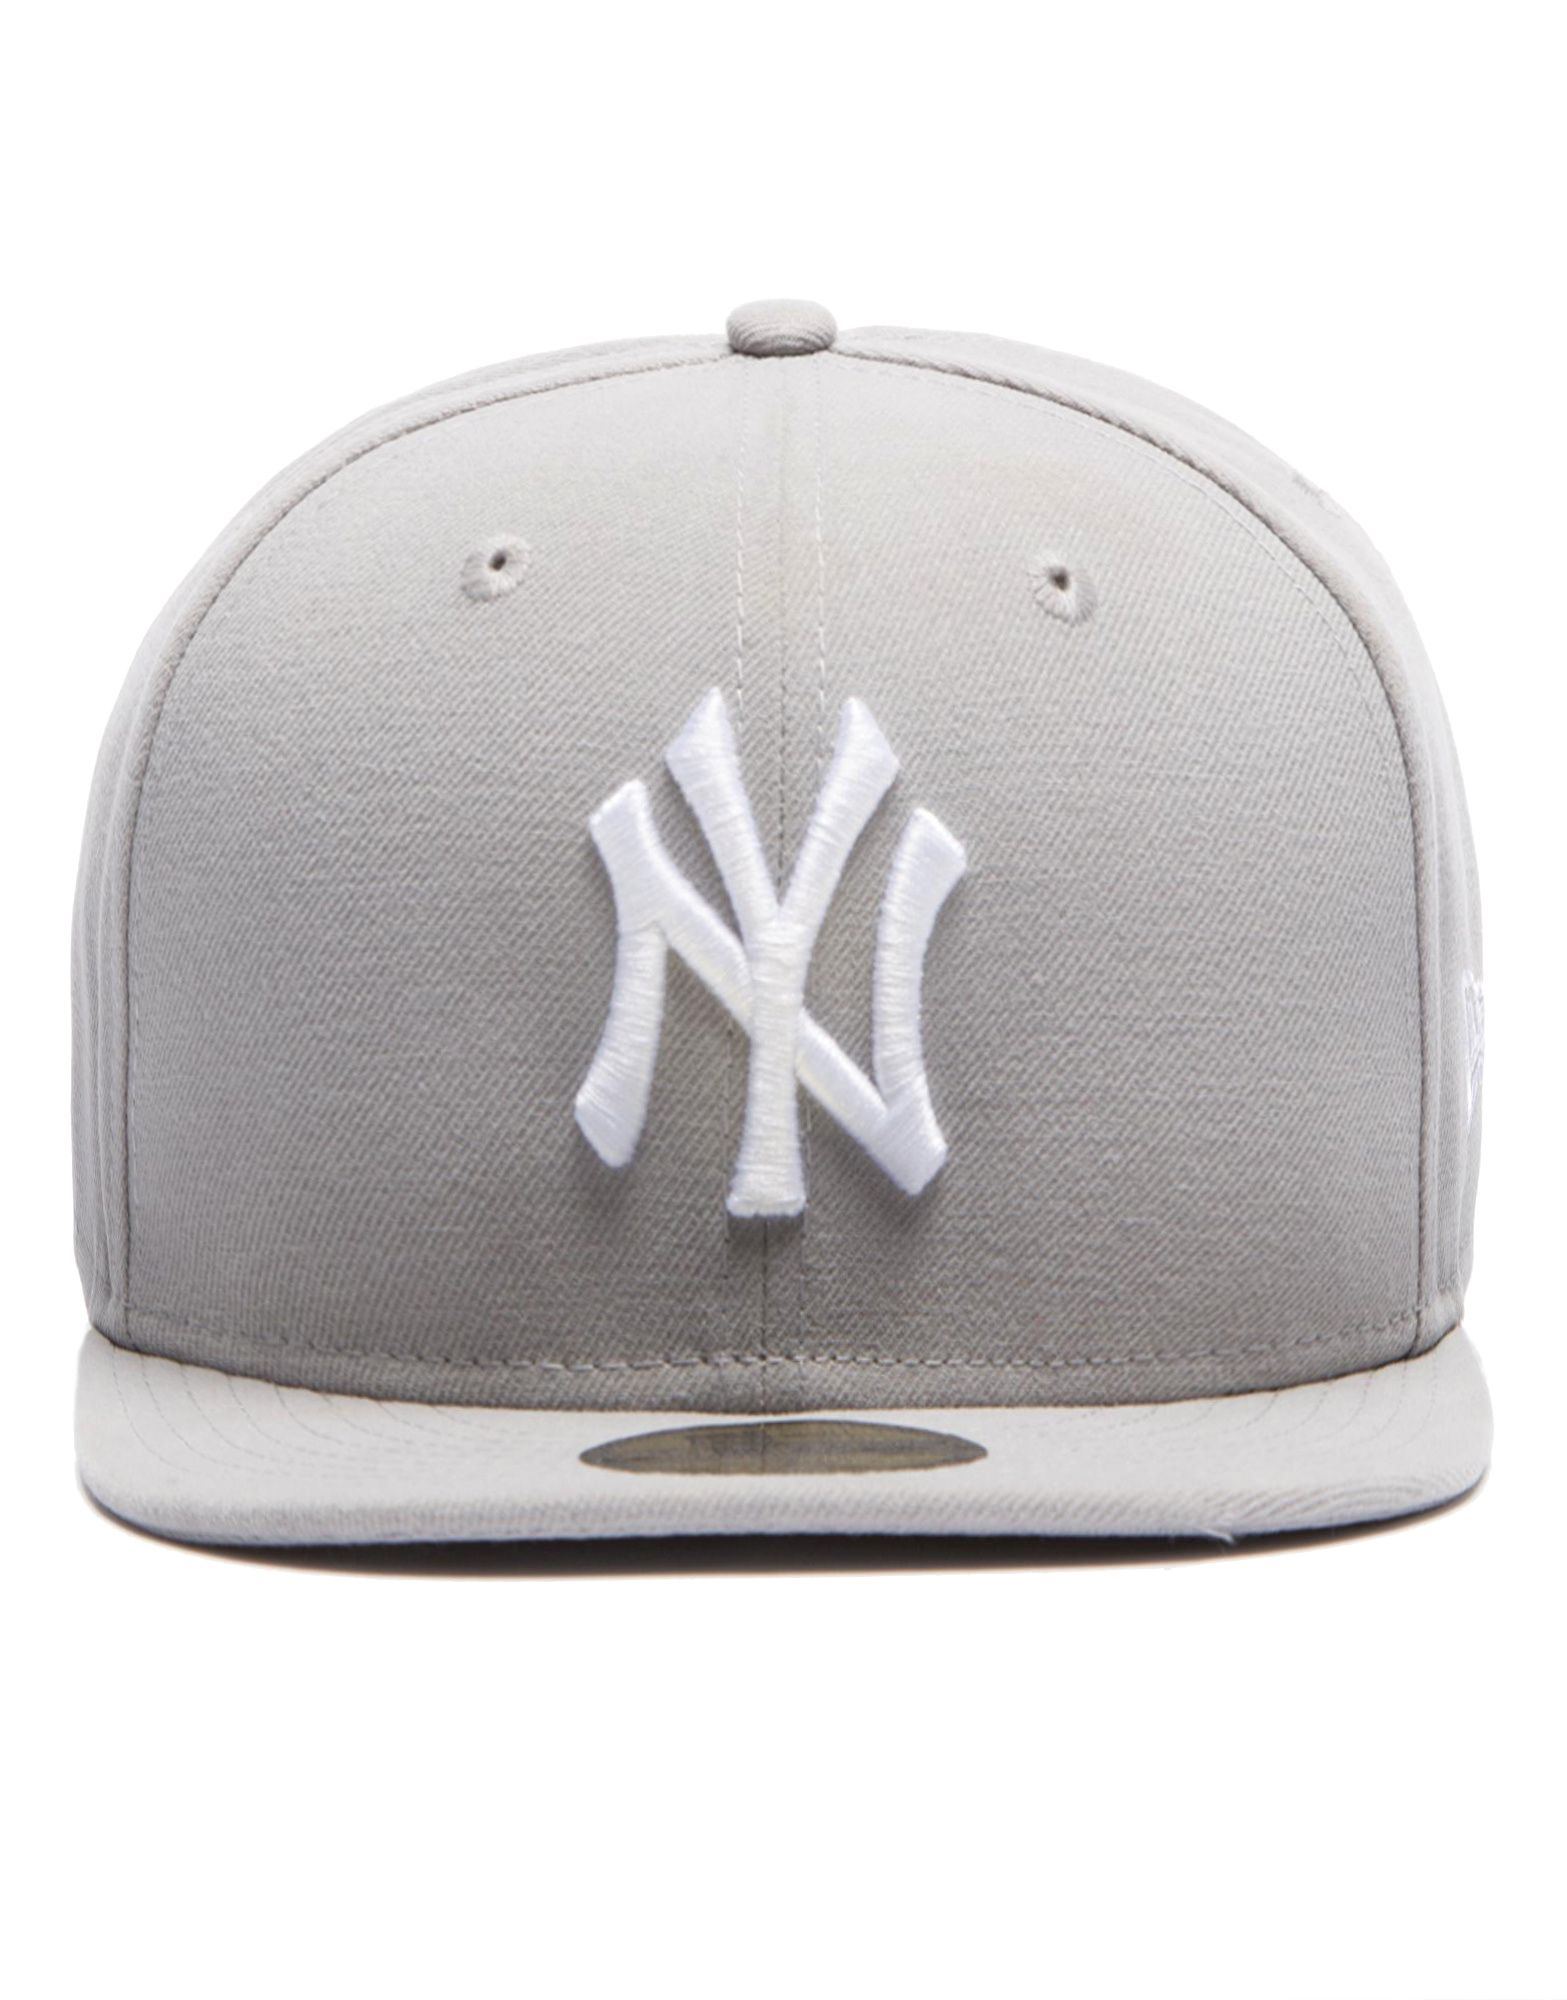 880148bdfc2 high-quality New Era MLB New York Yankees 59FIFTY Fitted Cap